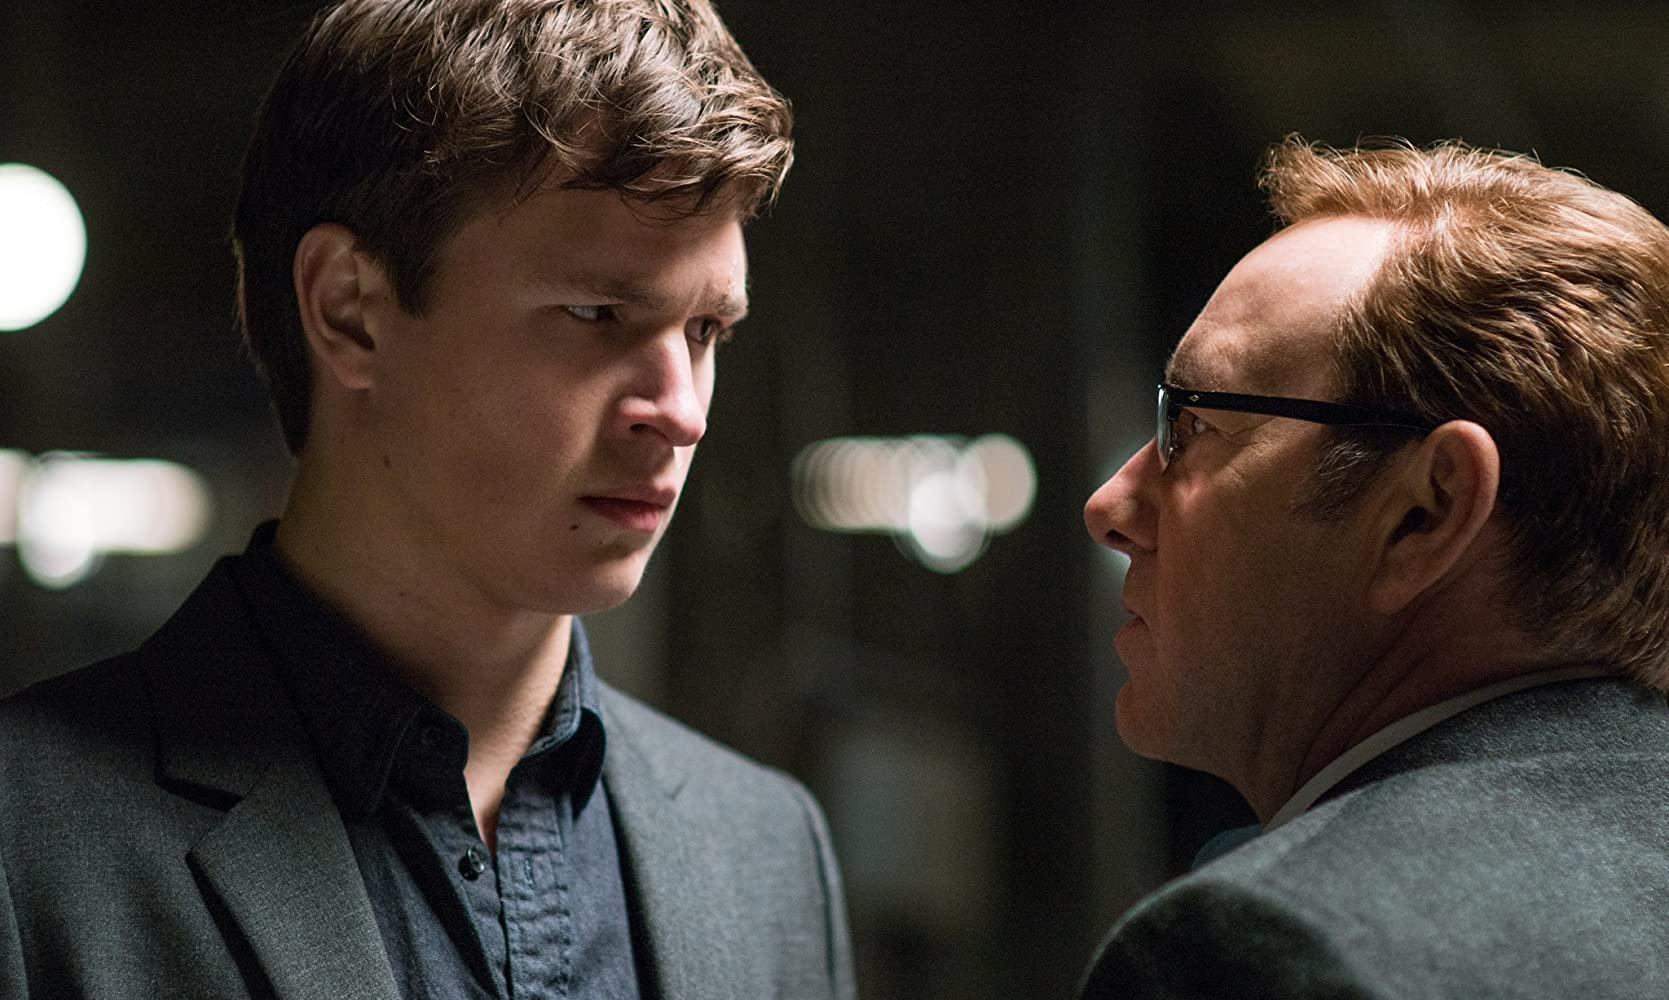 Kevin Spacey and Ansel Elgort in Baby Driver (2017)